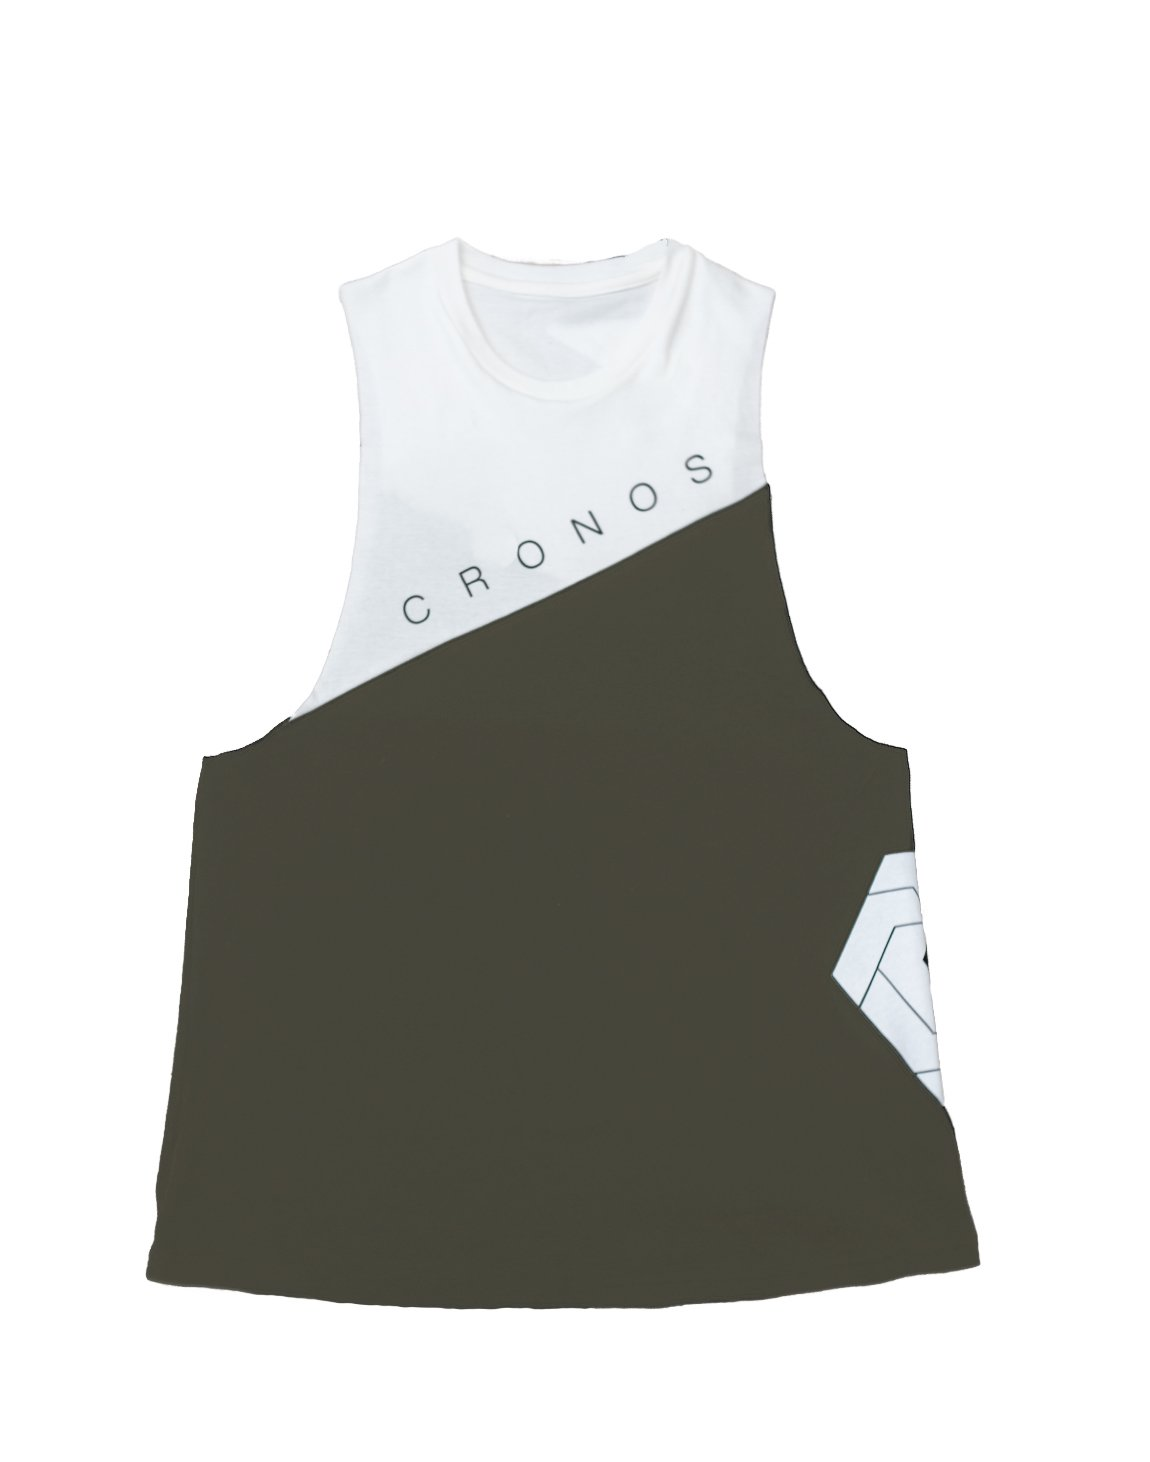 <img class='new_mark_img1' src='https://img.shop-pro.jp/img/new/icons55.gif' style='border:none;display:inline;margin:0px;padding:0px;width:auto;' />CRONOS NEW Bi-COLOR TANK TOP【KHAKI×WHITE】